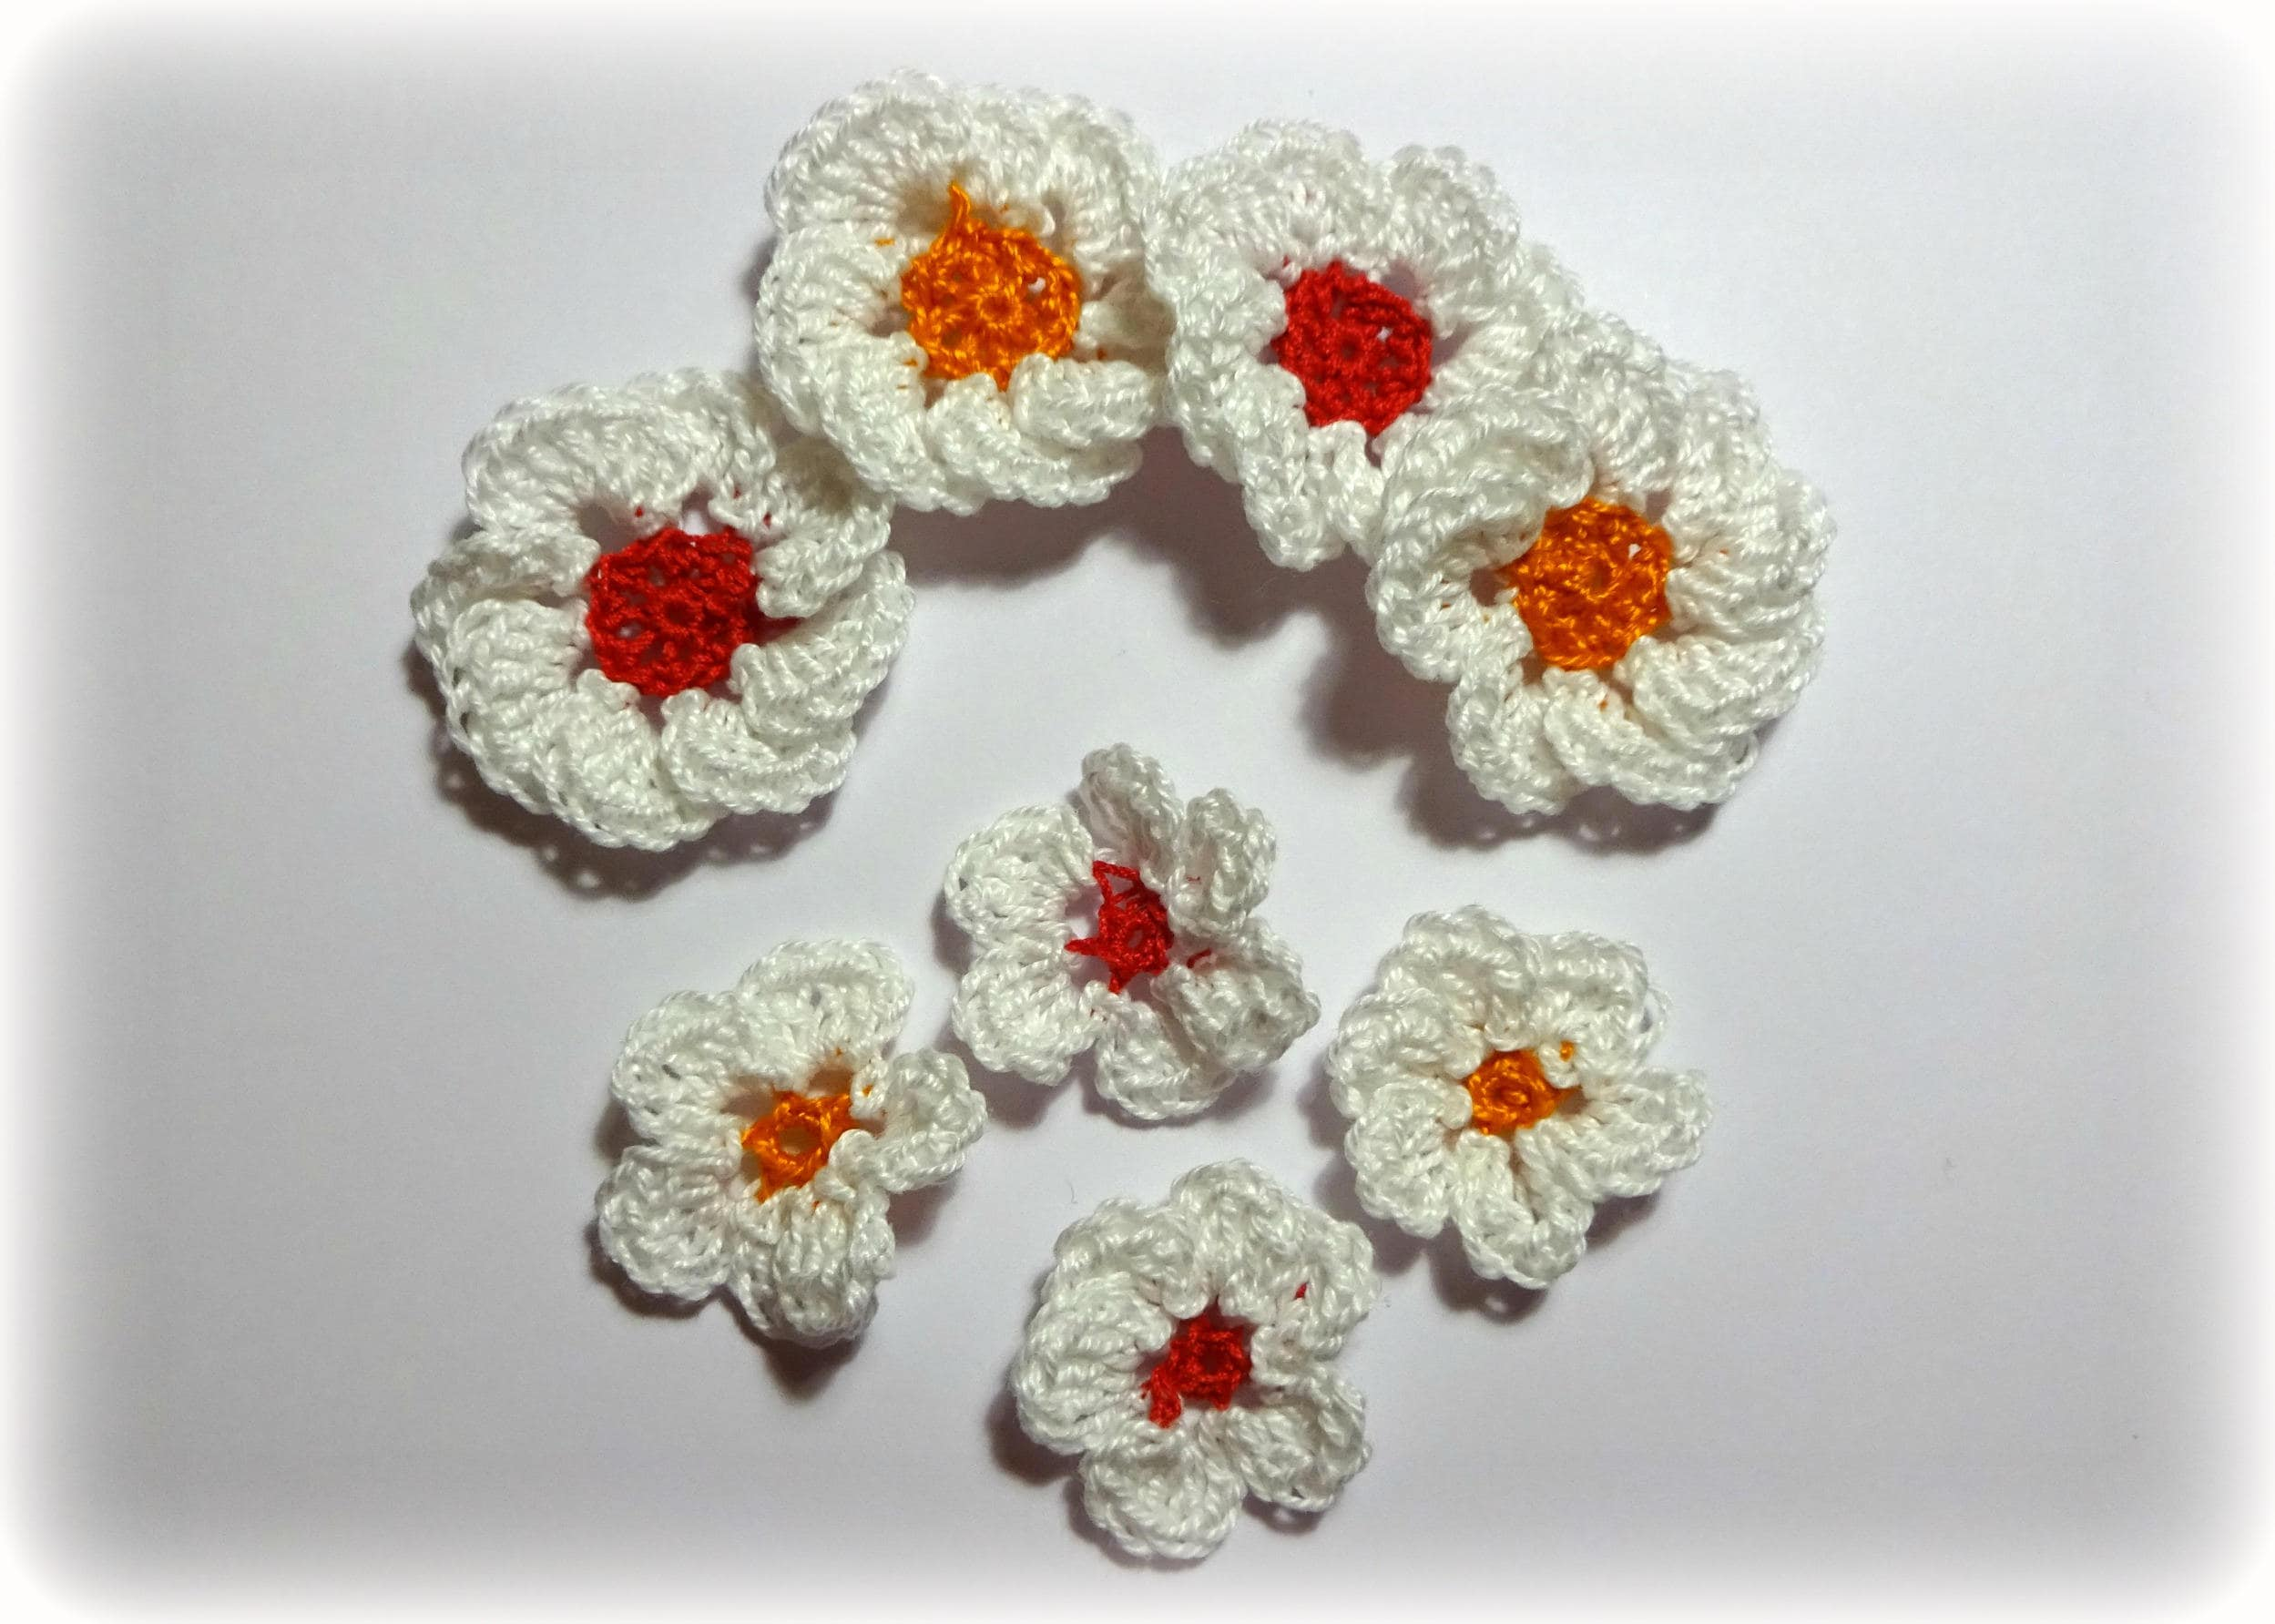 8 flowers crochet applique white orange and red heart from